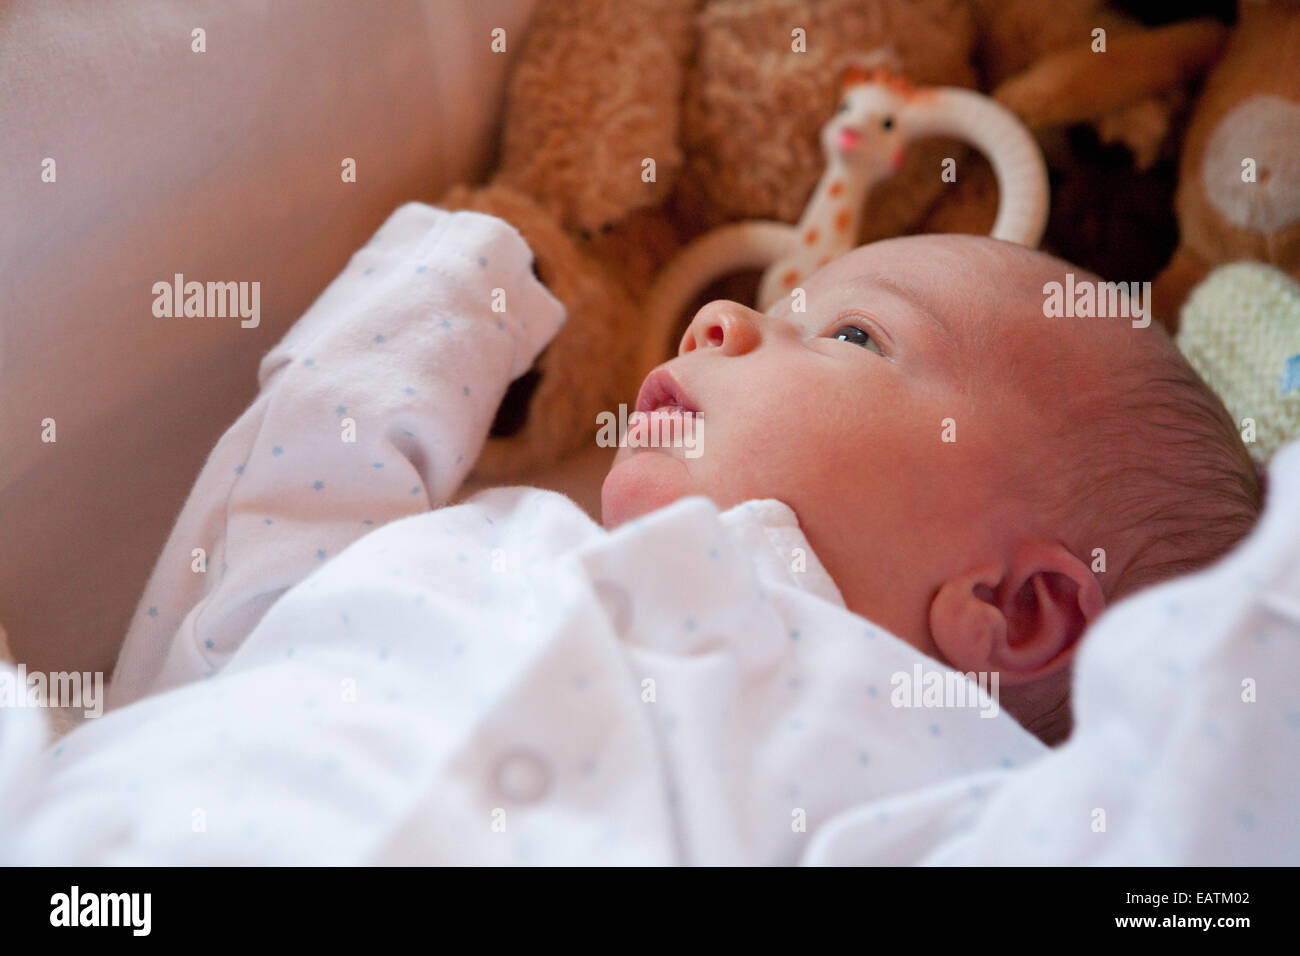 Baby in cot with toys - Stock Image